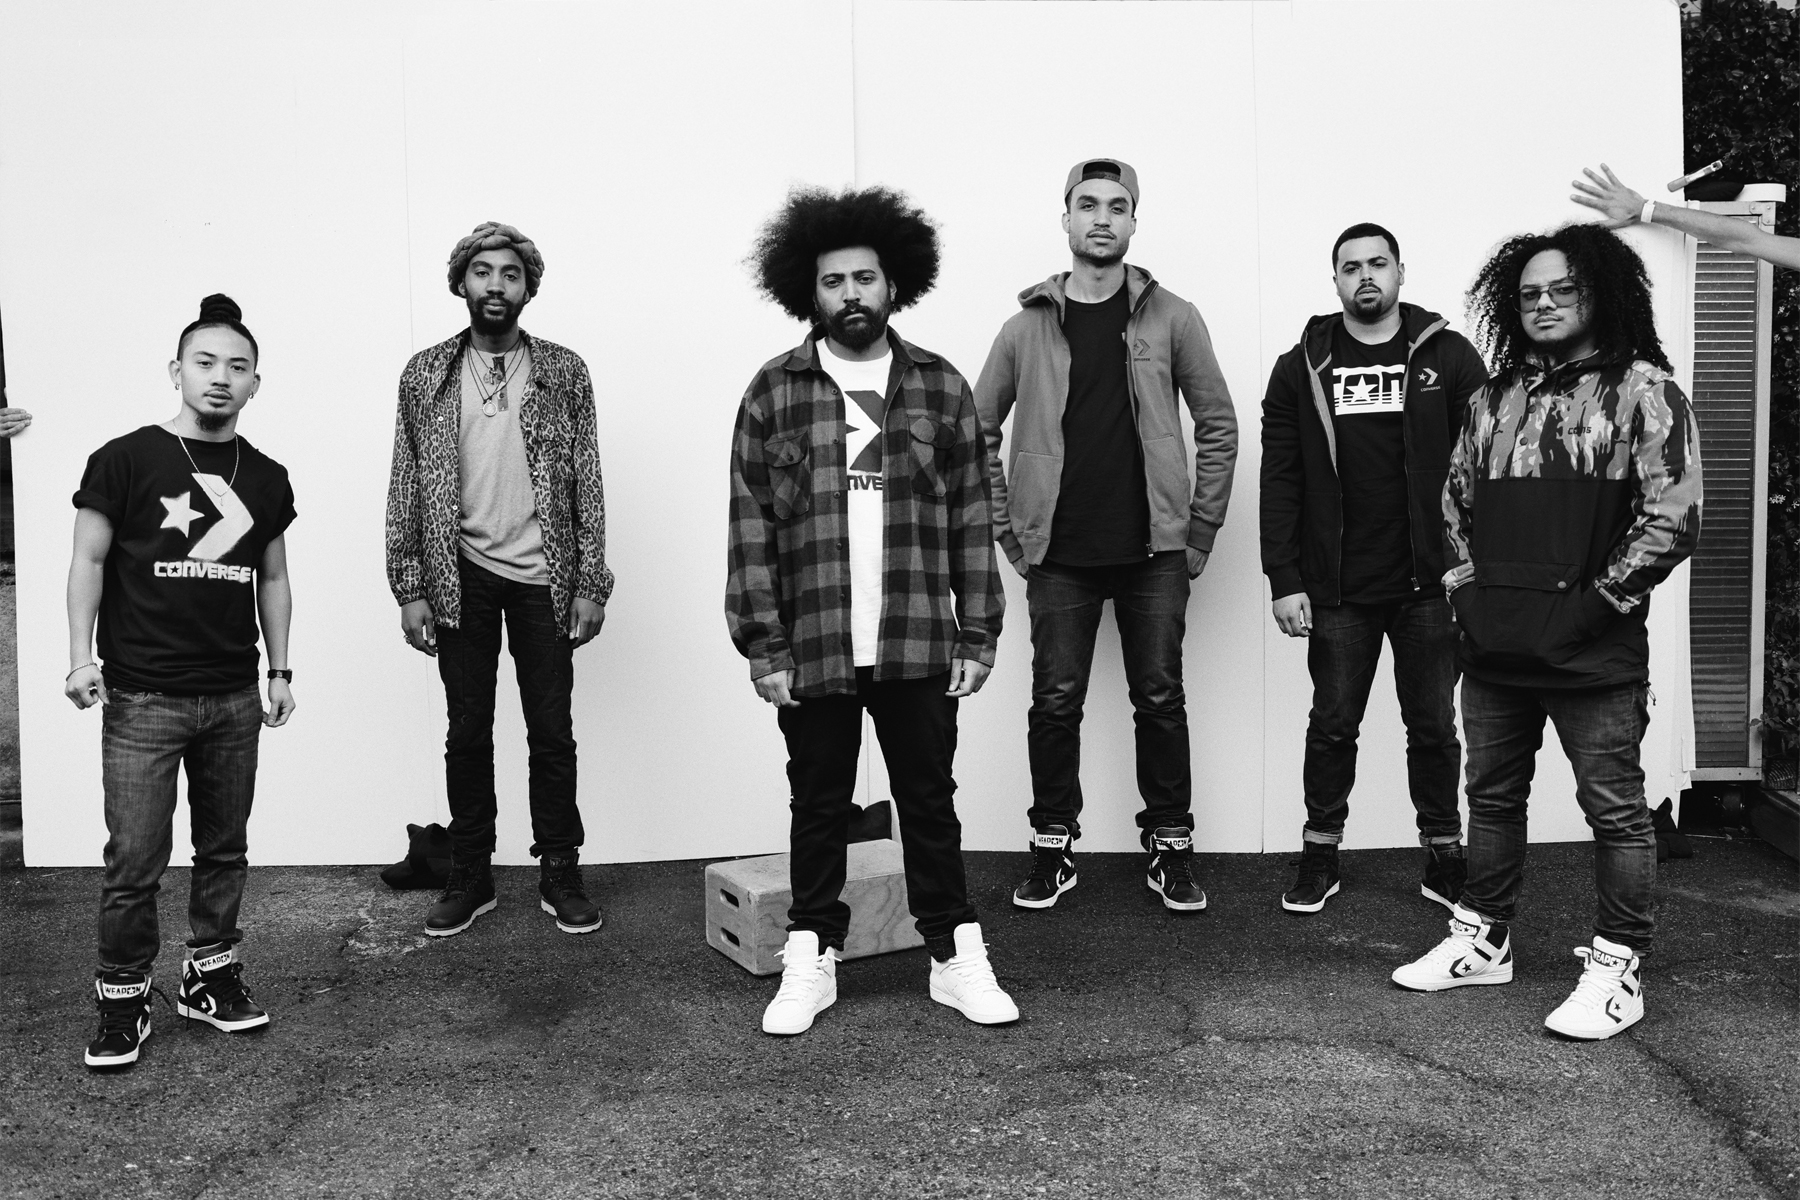 converse cons talks music nyc and style with worlds fair